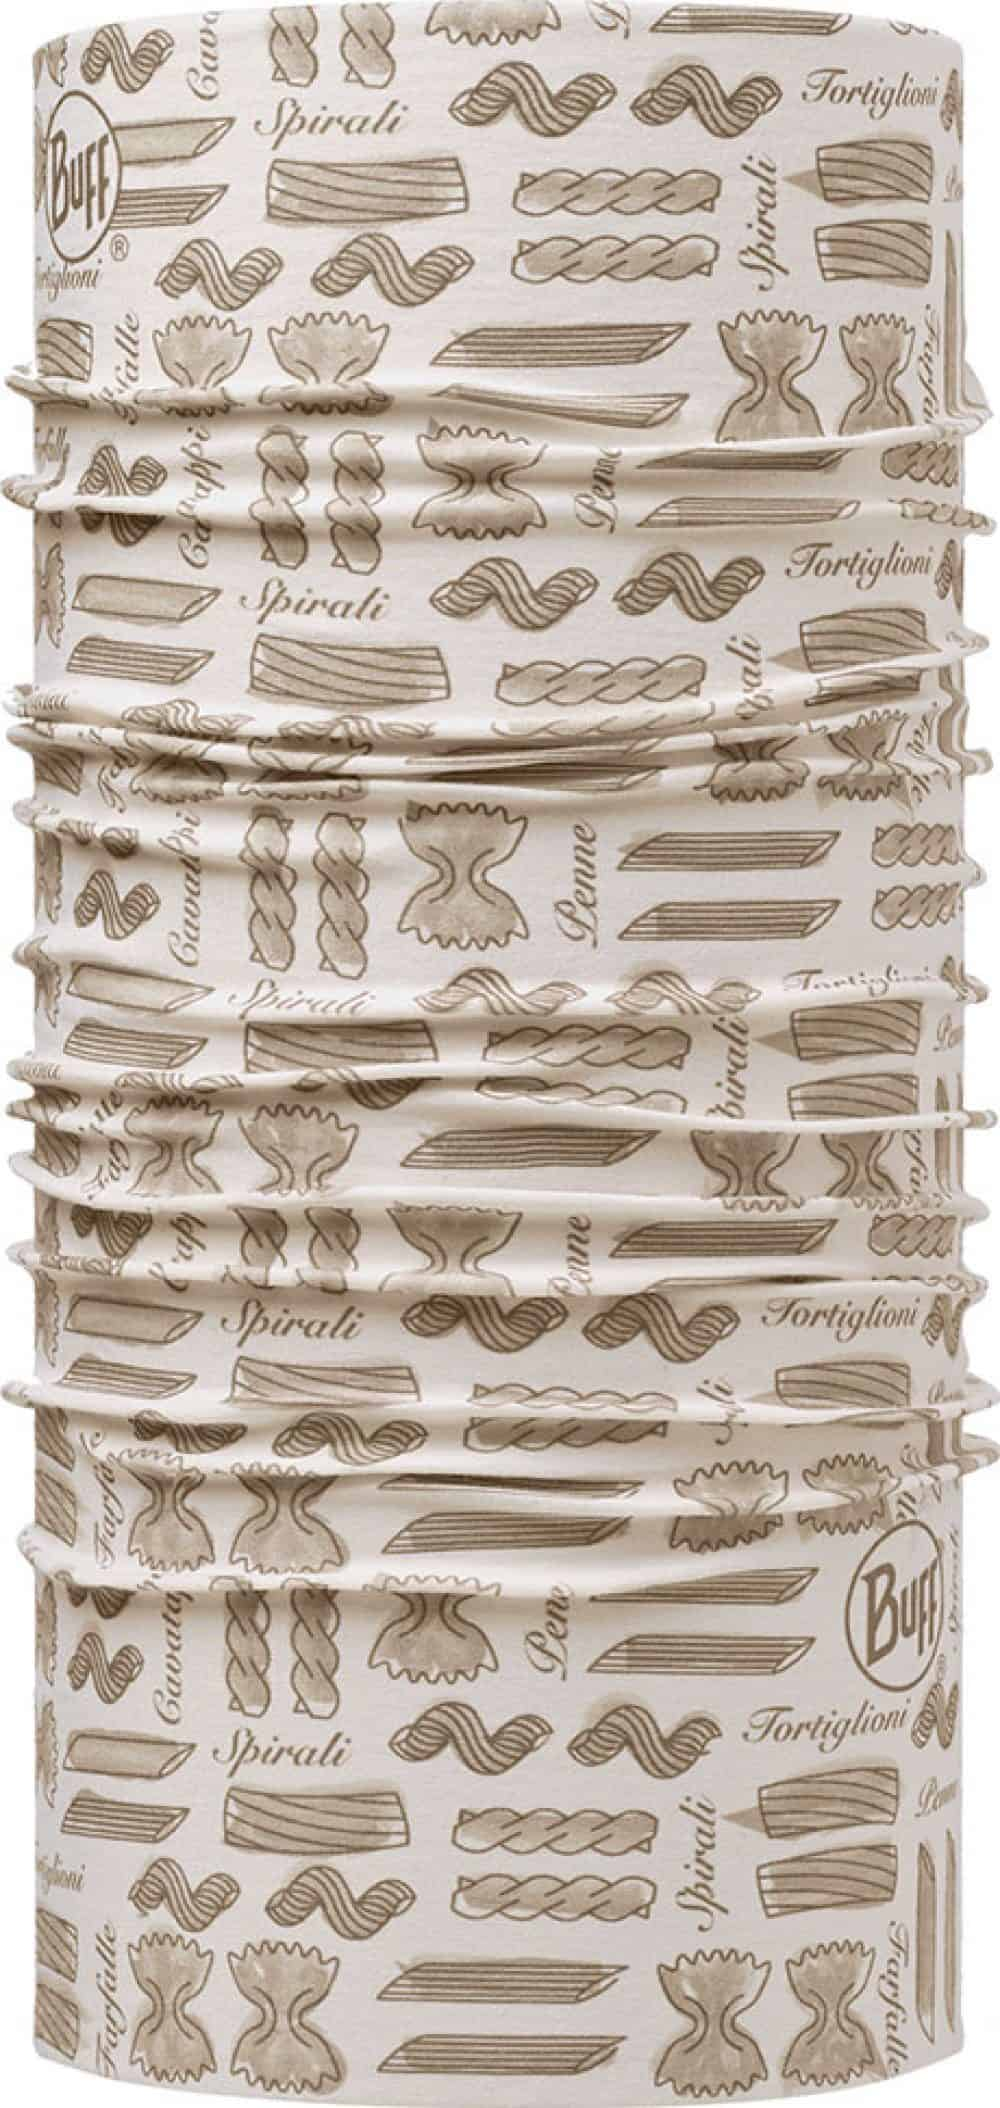 "Studio photo of the Professional range Dry Cool Buff® Chefs Collection design ""Spirali Cru"". Source: buff.eu"